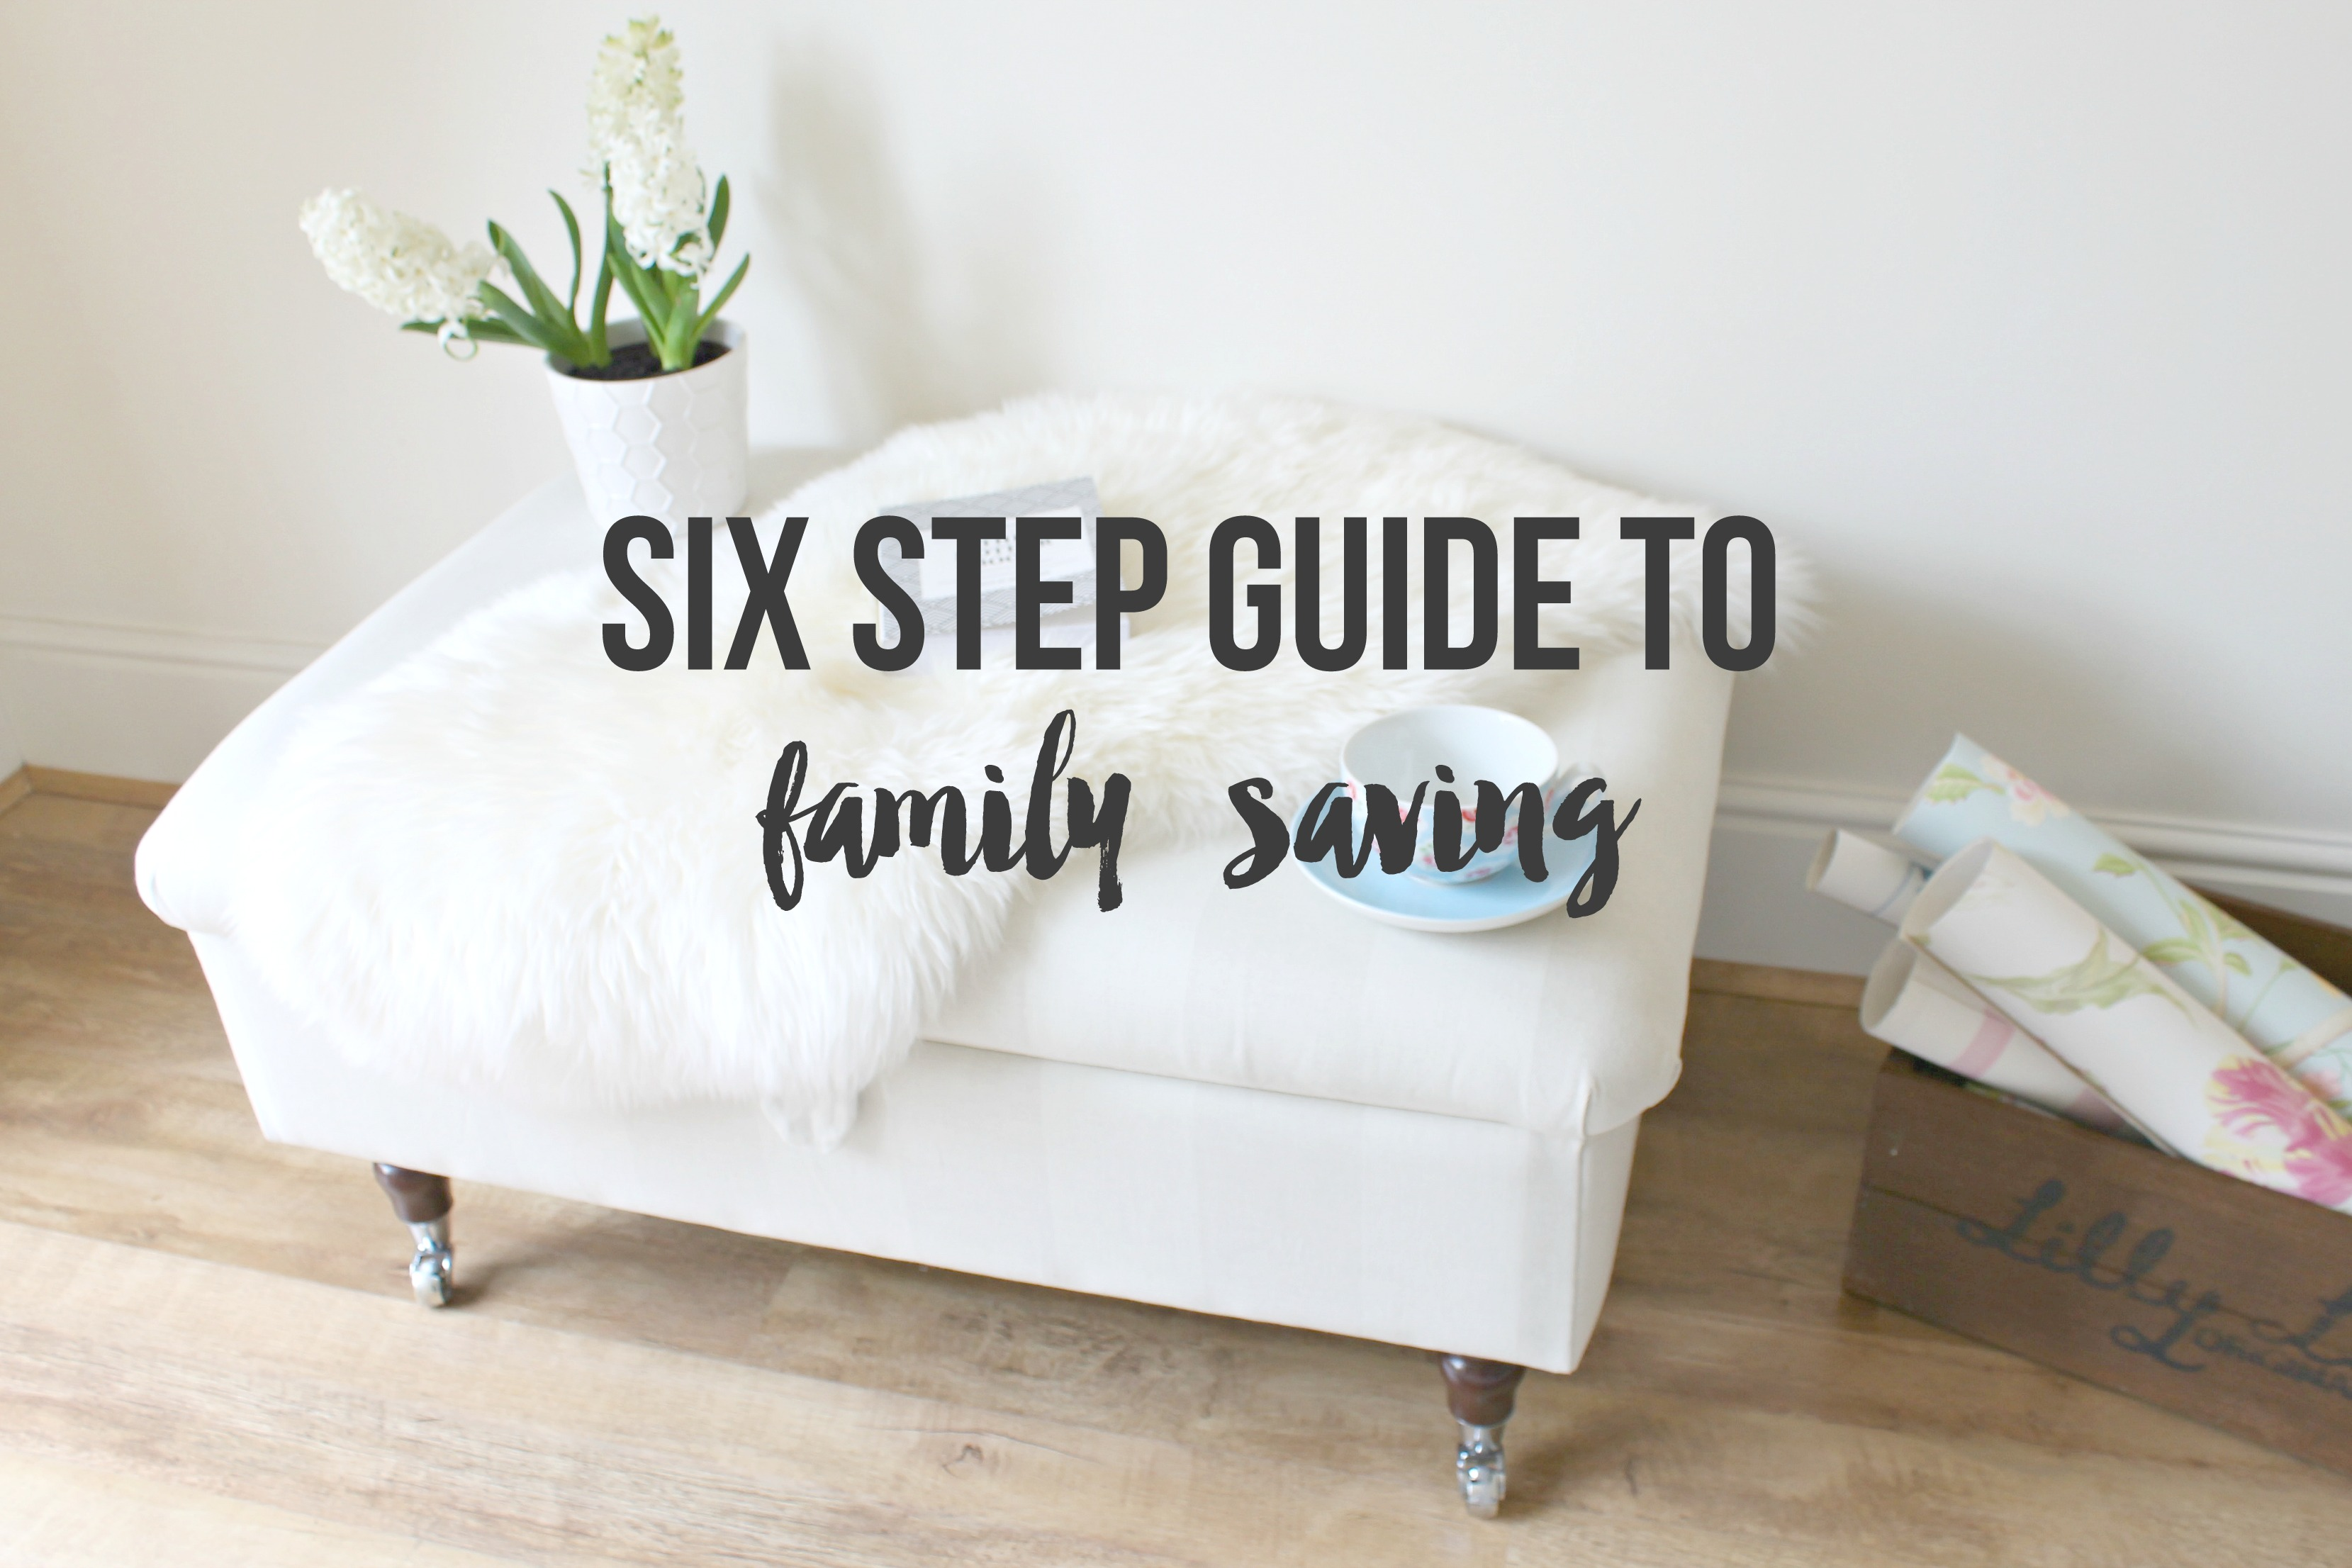 The Six-Step Guide to Family Saving